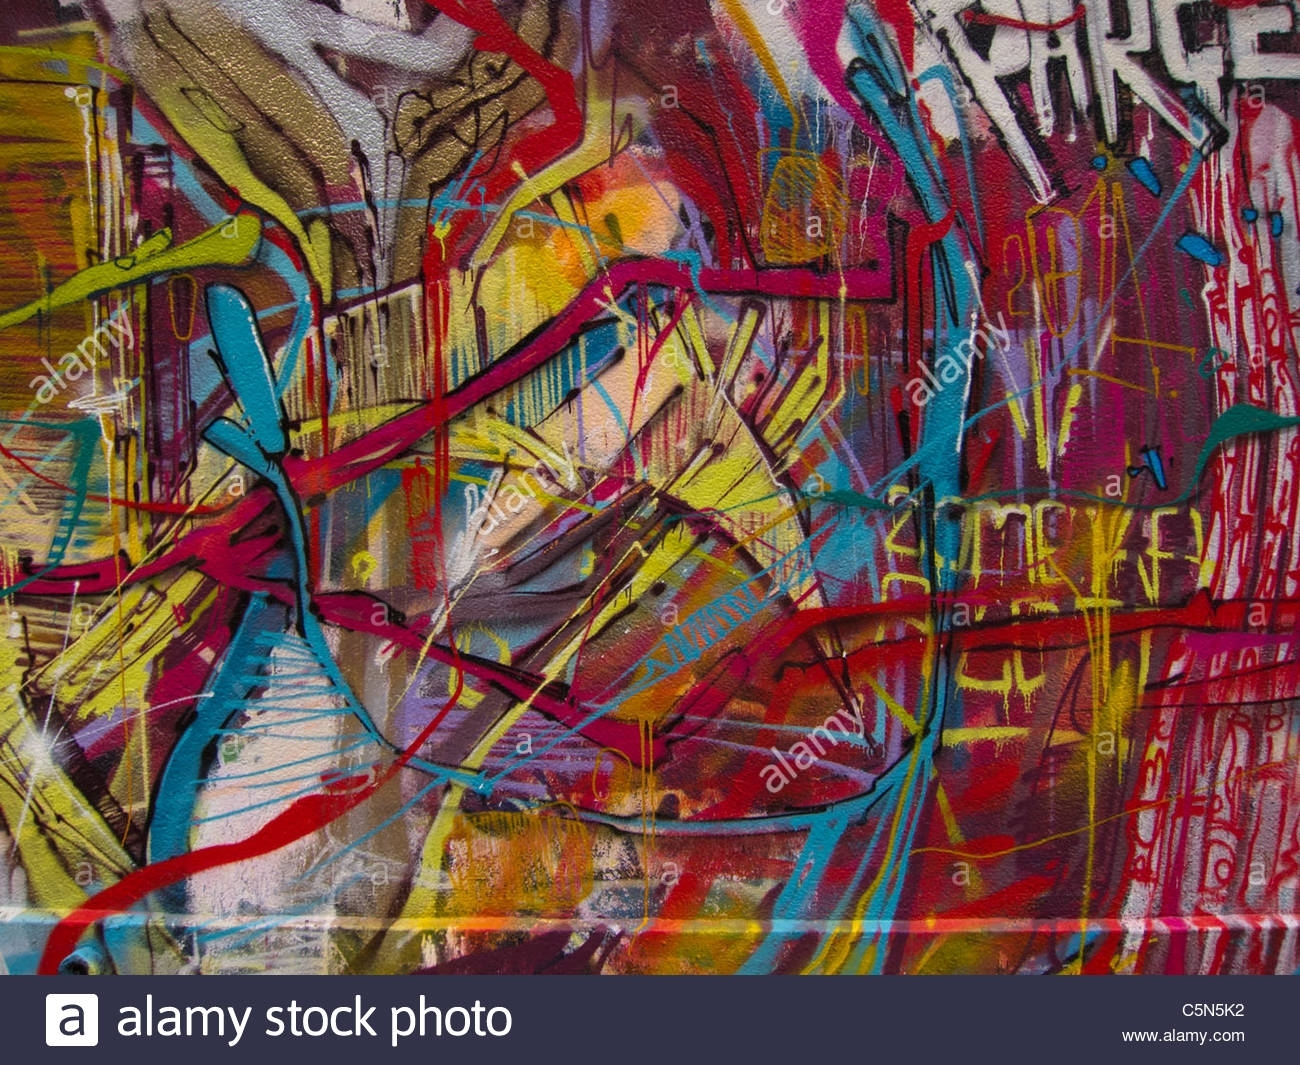 Paris, France, Wall Paintings, Graffiti, Street Art, Abstract Intended For 2017 Abstract Graffiti Wall Art (View 18 of 20)